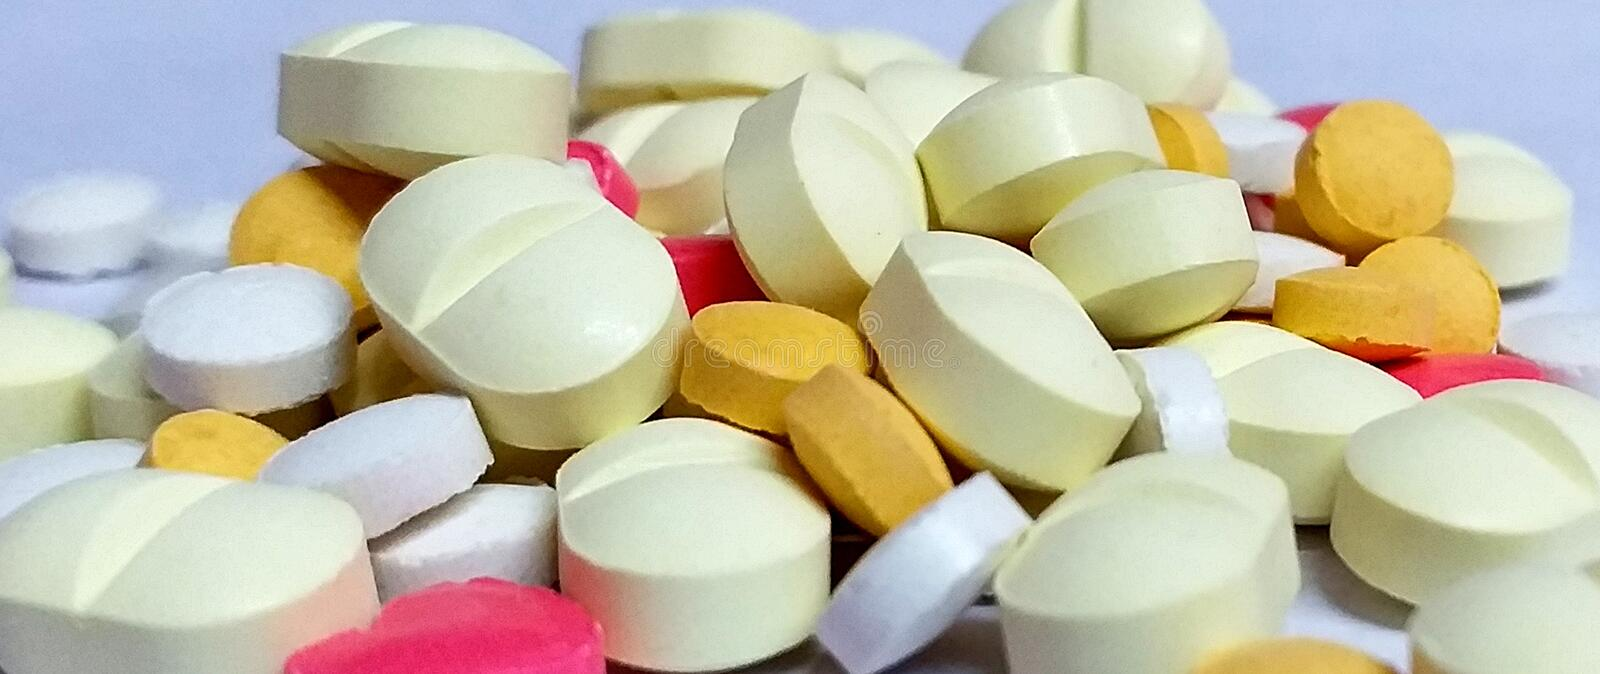 Find medicine tablets and capsules stock HD images royalty free stock photography